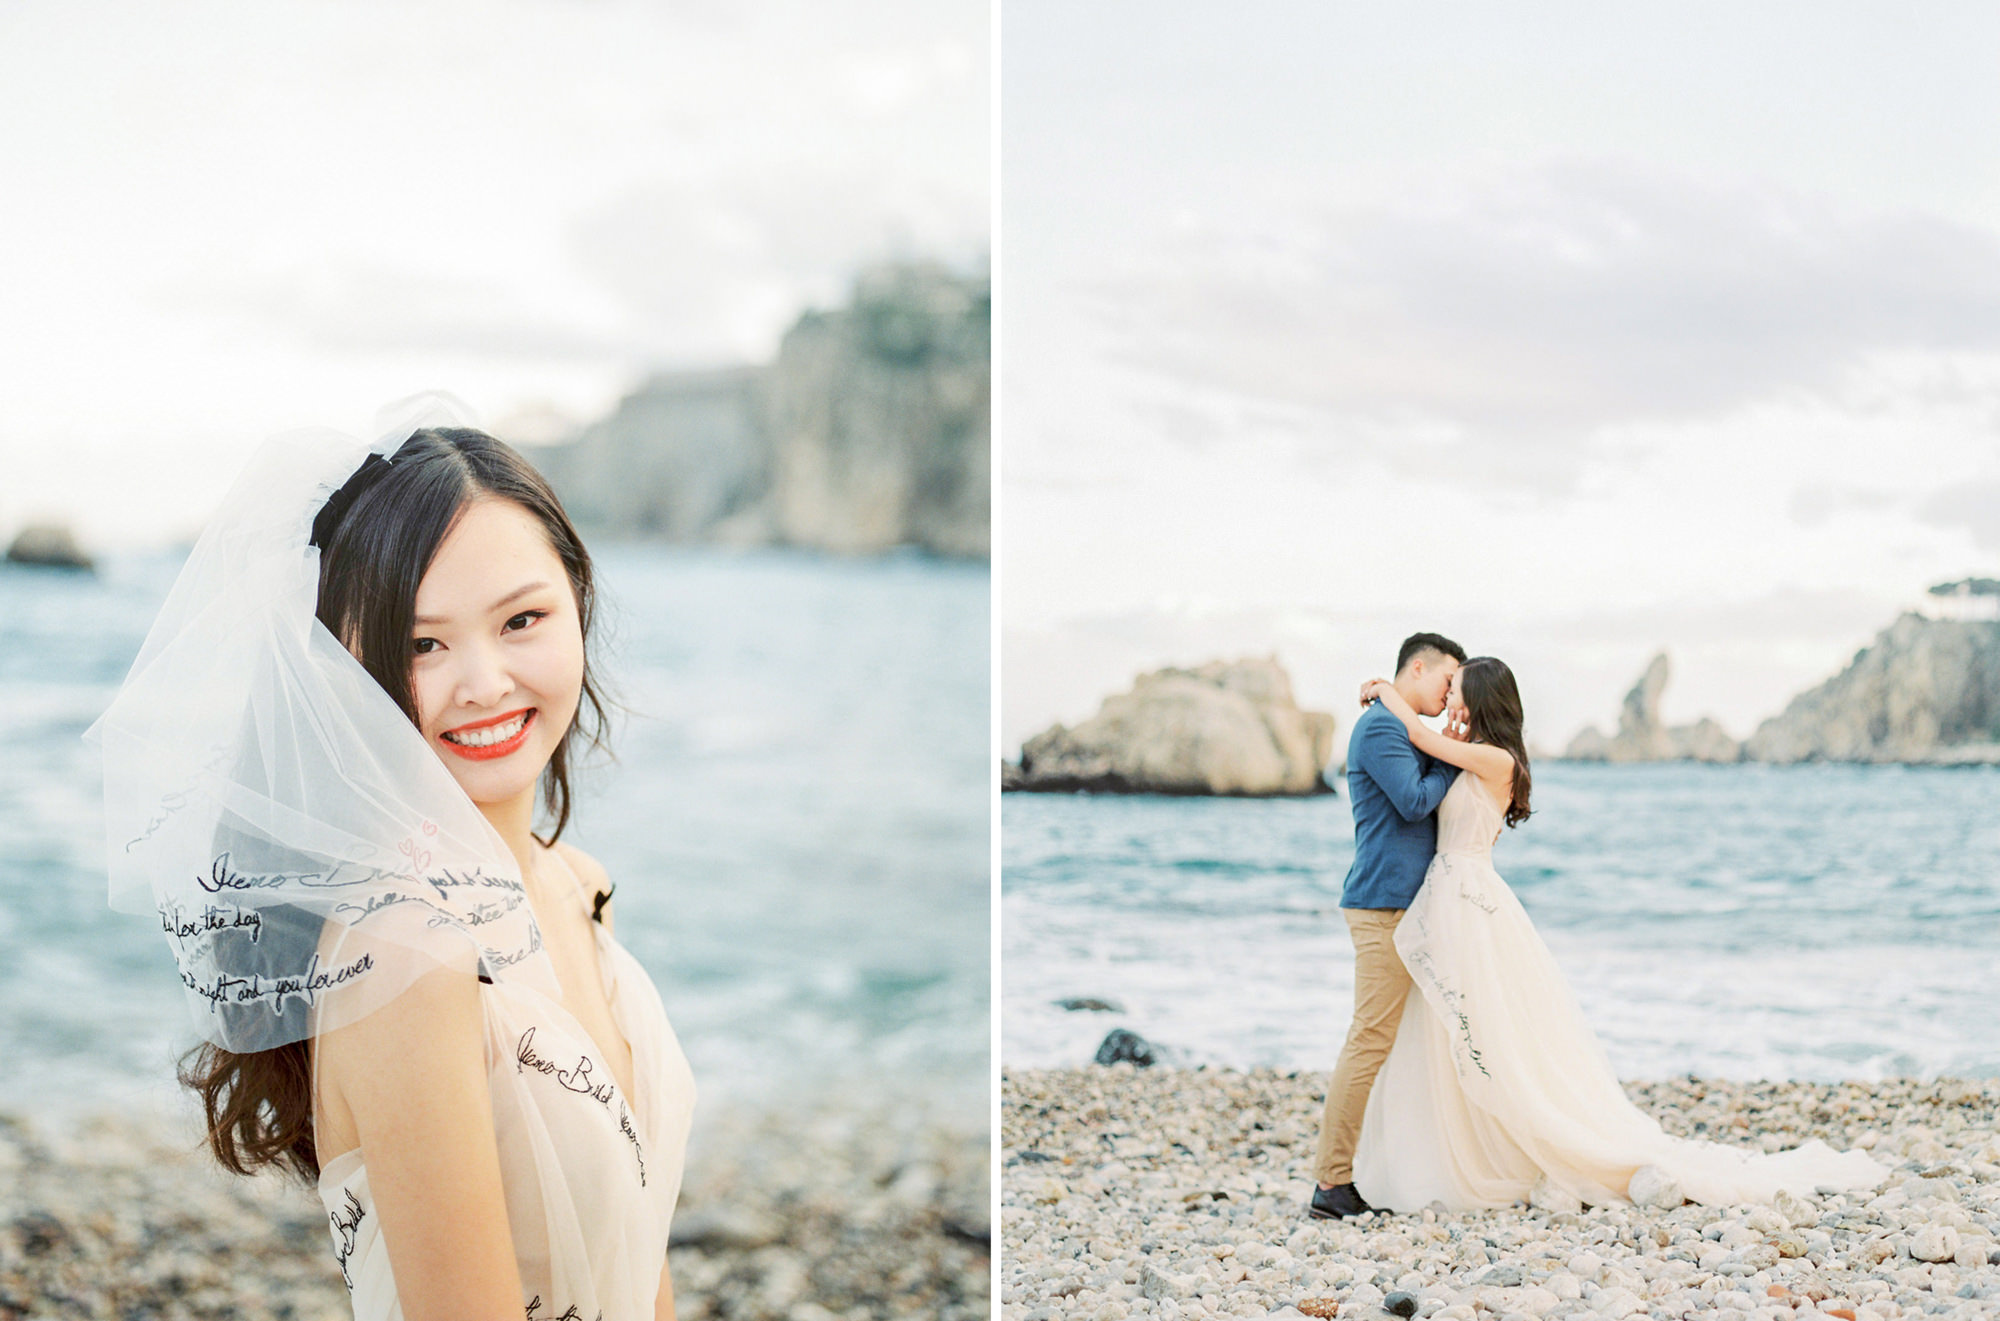 Junyi & Xuanran in Sicily by CHYMO & MORE Photography (http://ch